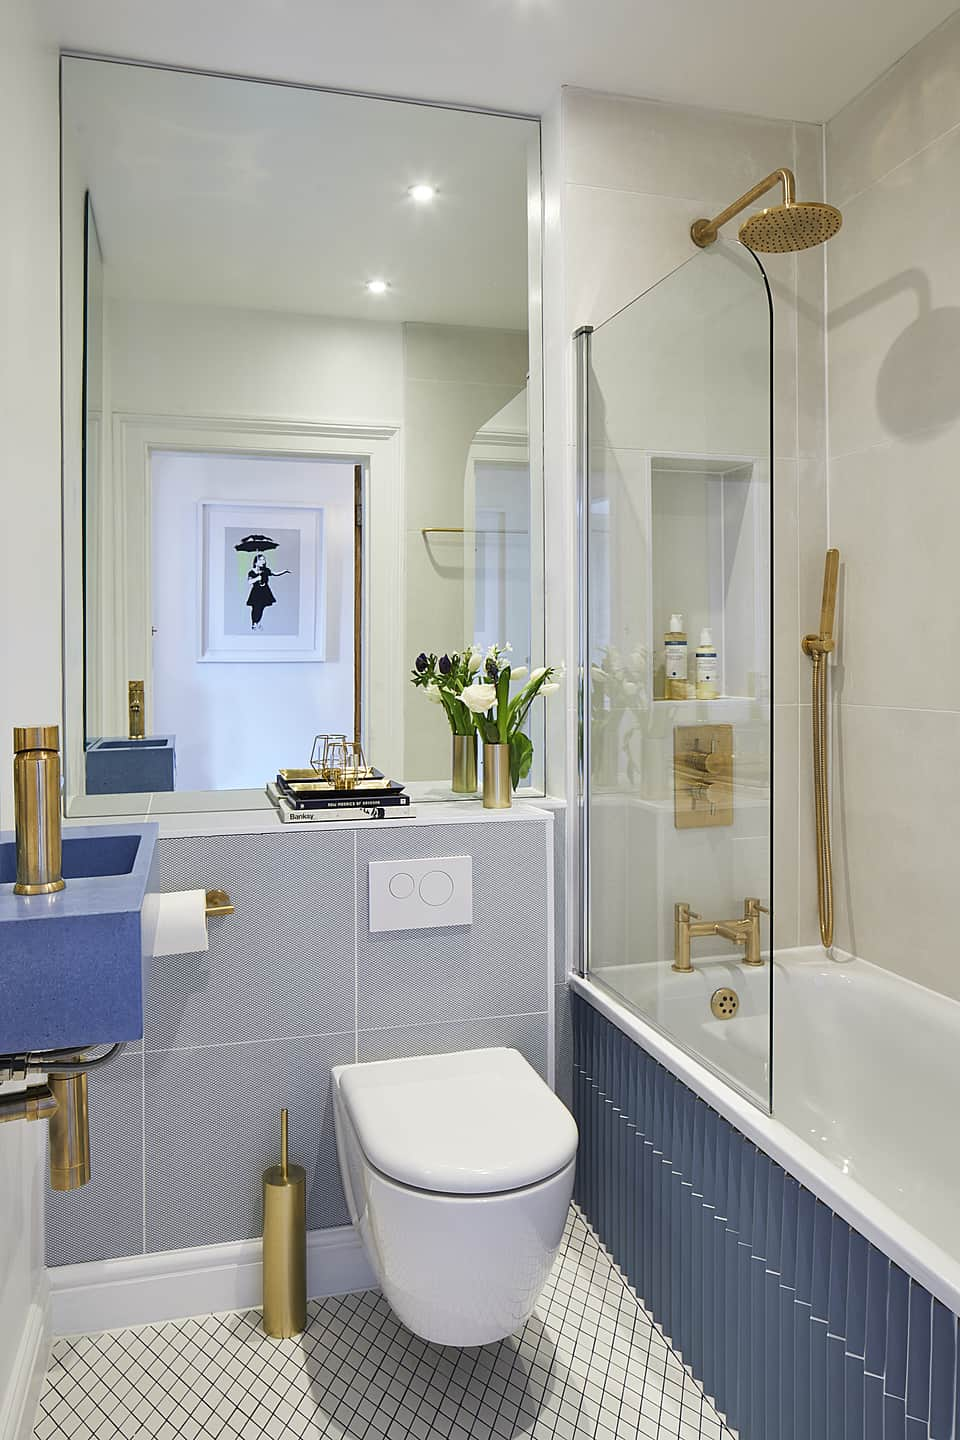 Bathroom Trends 2021: Top 14 New Ideas to Use in Your Interior